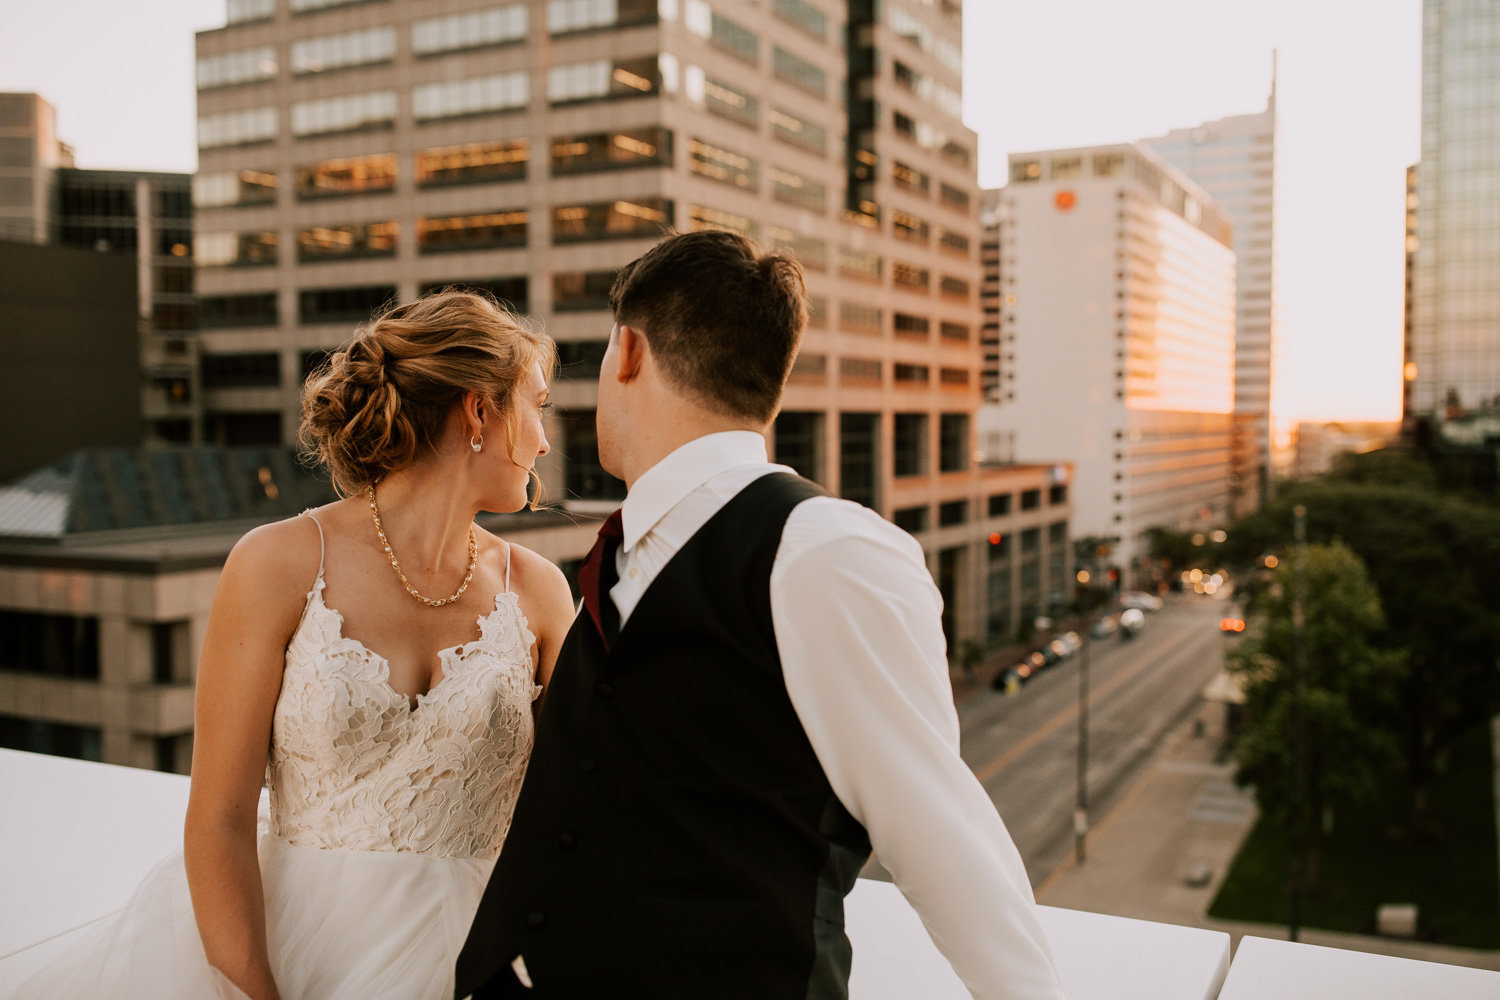 Rooftop-sunset-wedding-indianapolis-208